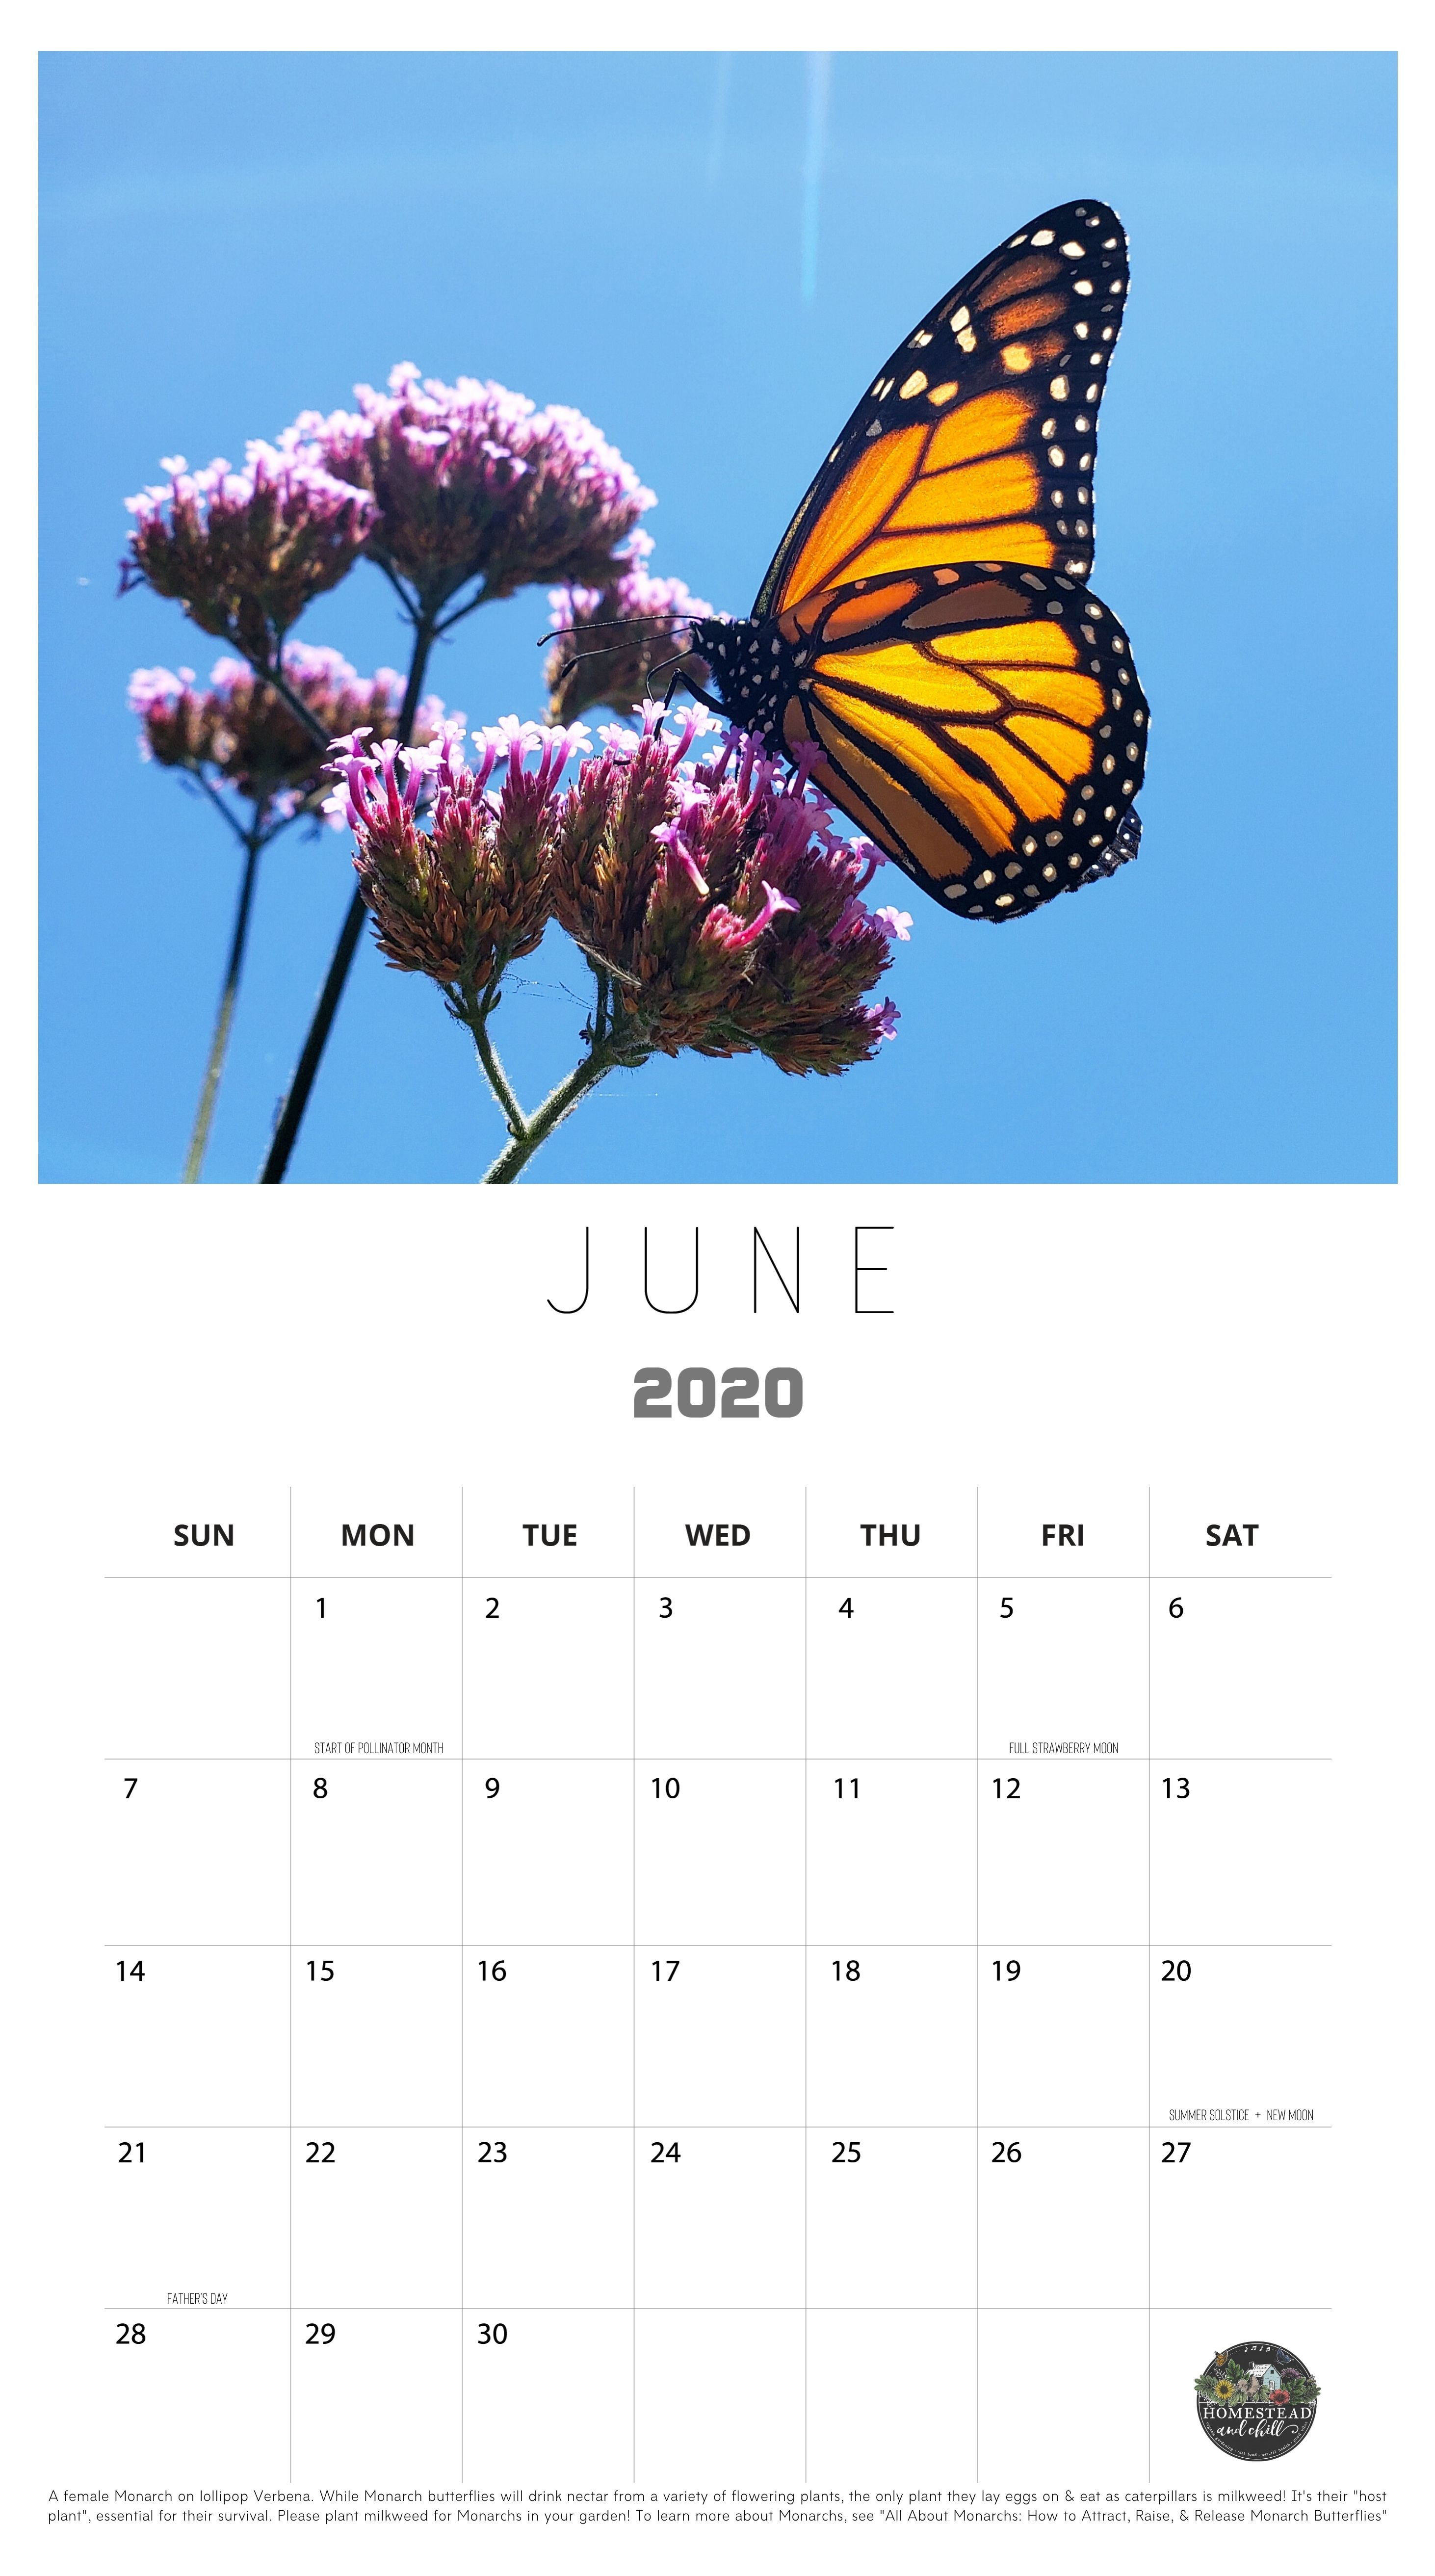 Homestead and Chill's 2020 calendar is shown, the month of June is the part of the calendar that is depicted and the image is a Monarch butterfly drinking nectar from a Lollipop Verbena.